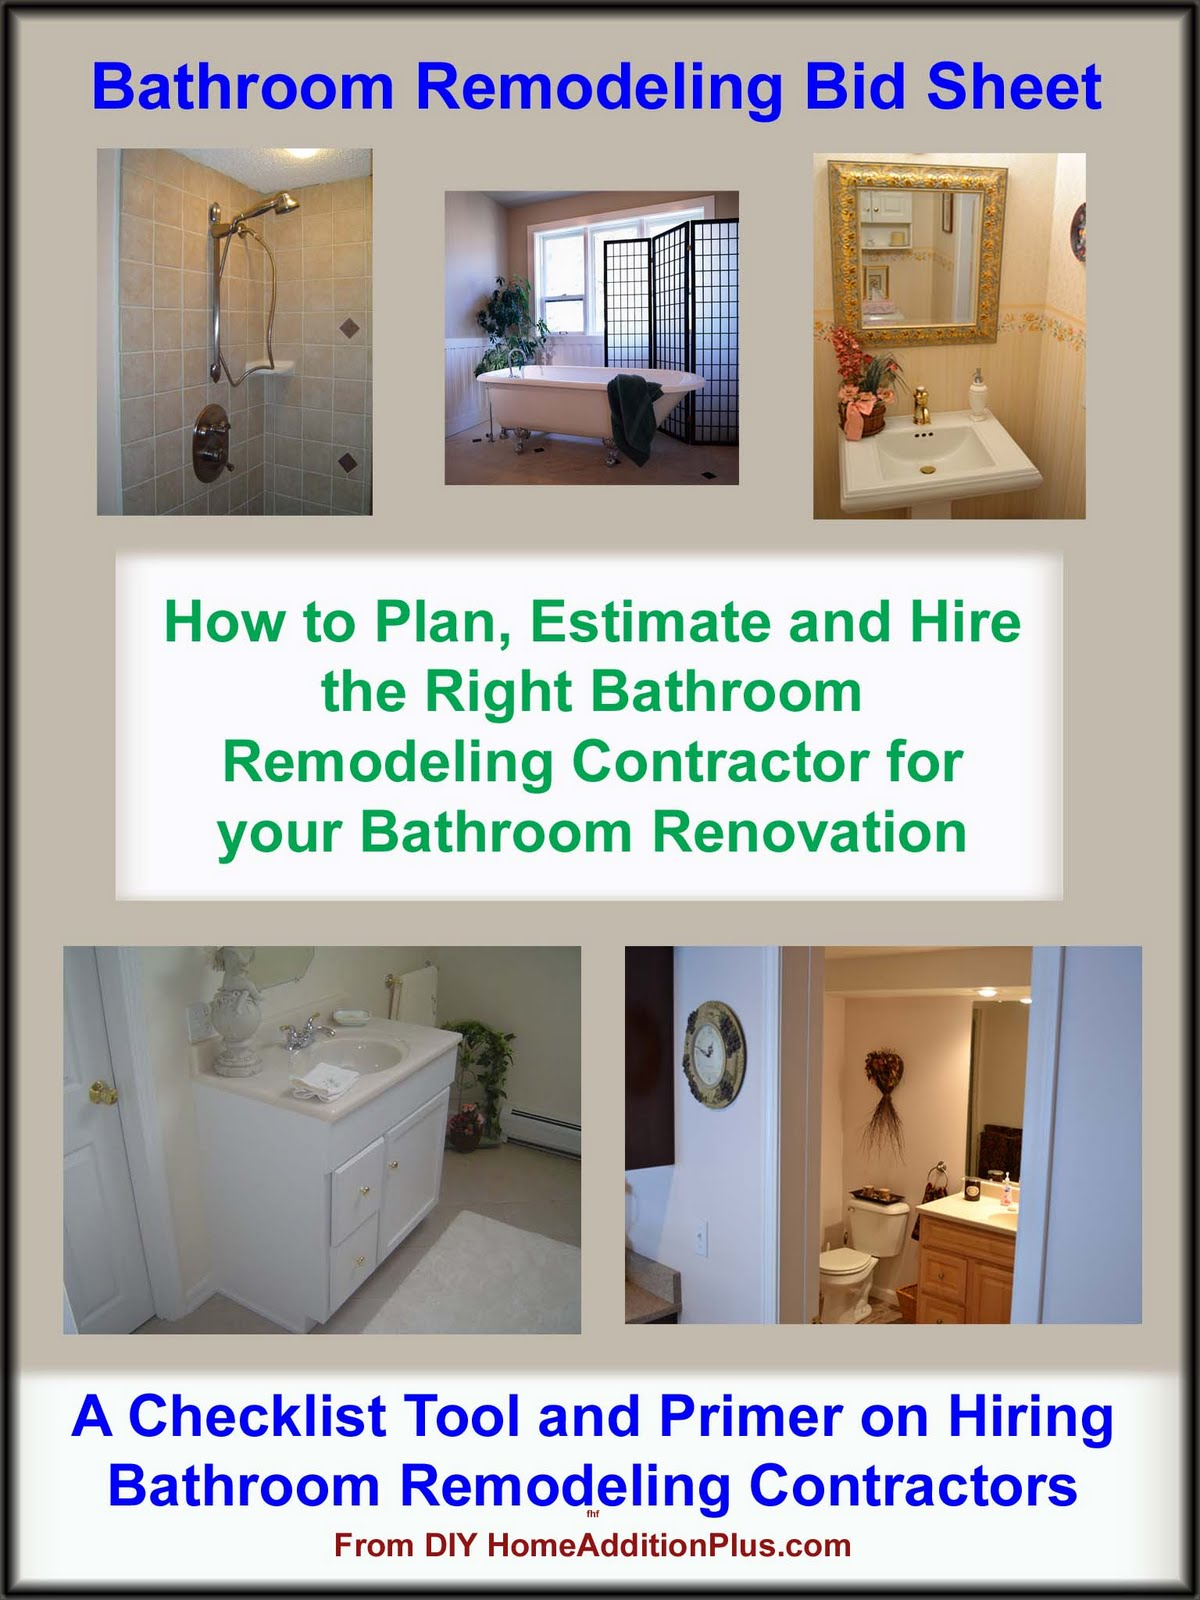 Bathroom Renovation Guide: Home Addition: Bathroom Remodeling Guide